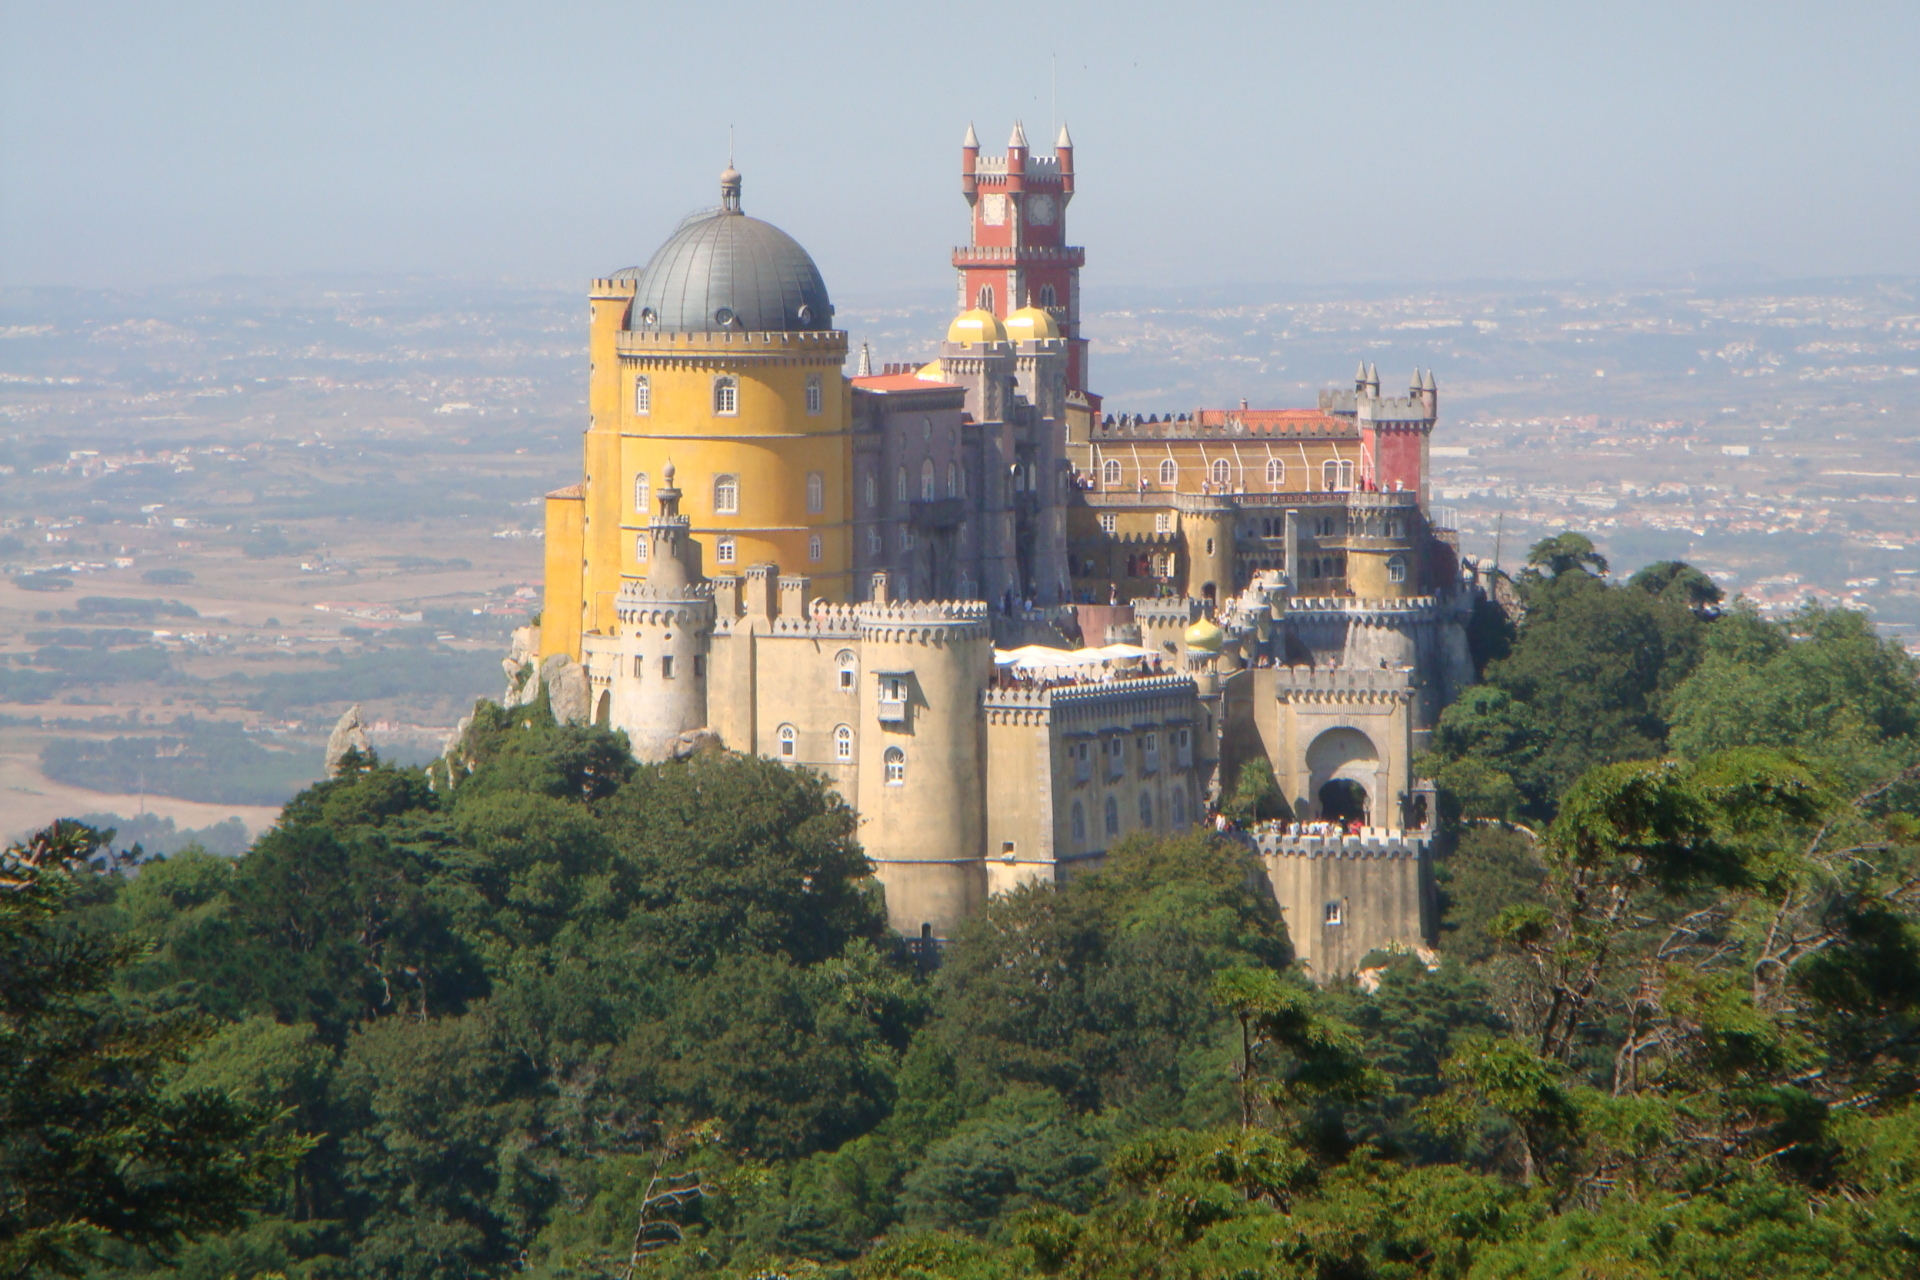 Start of the construction of Pena Palace